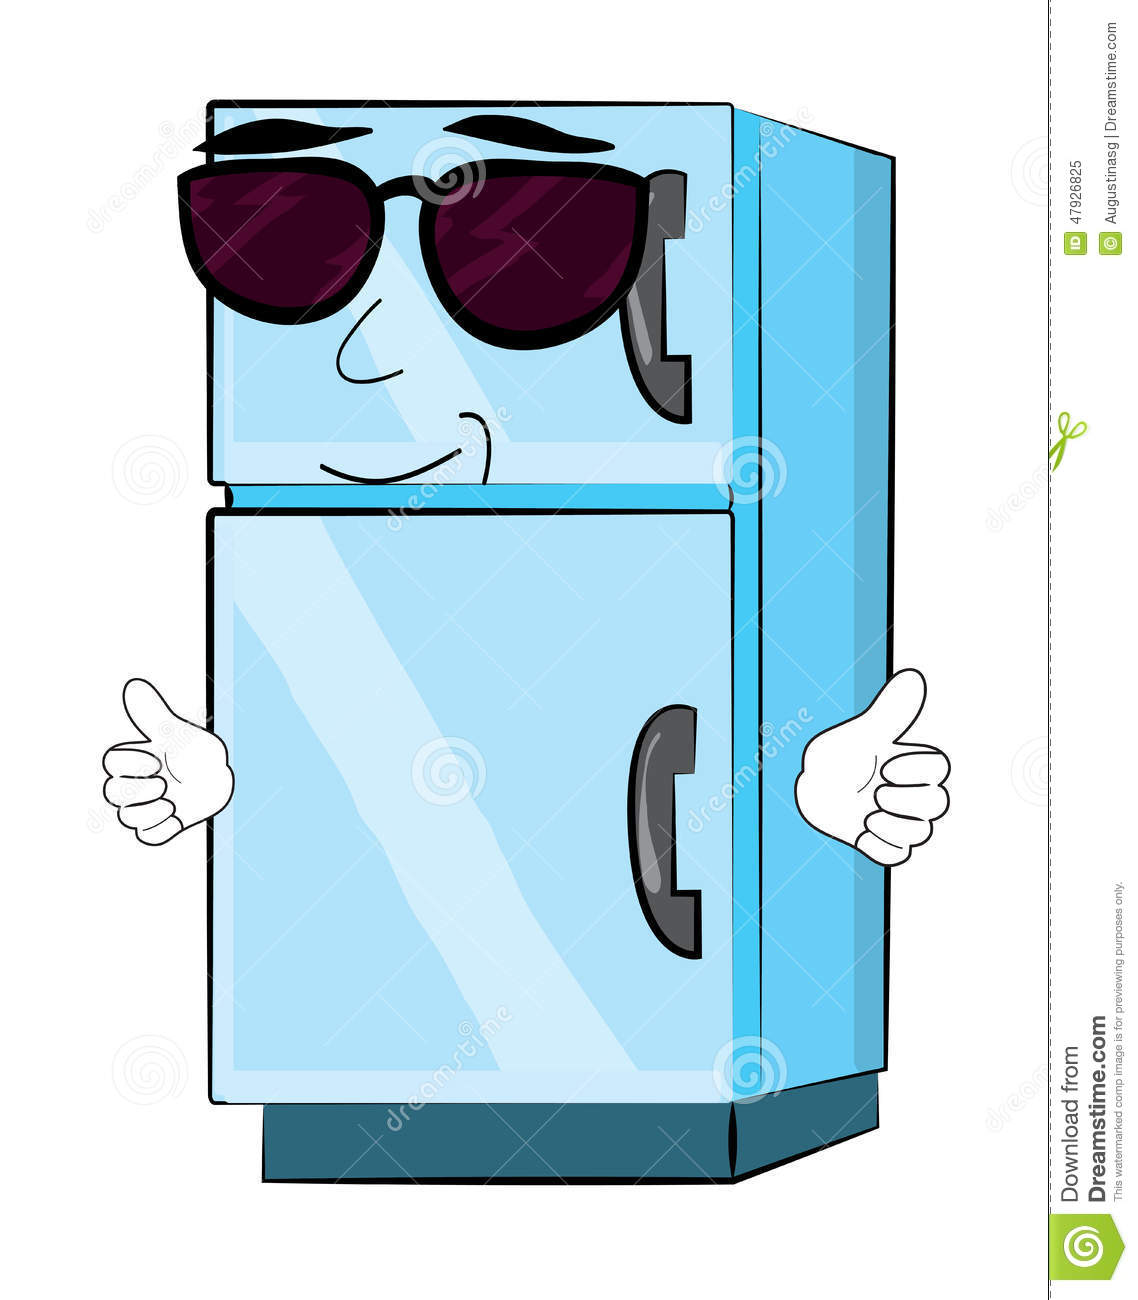 1229435 Royalty Free Refrigerator Clipart Illustration also Small Portable Ac Unit Images as well Coca Colann Pazarlama Stratejisi also 212513676142416757 furthermore Hanging Wall Shelves Designs. on vector mini fridge